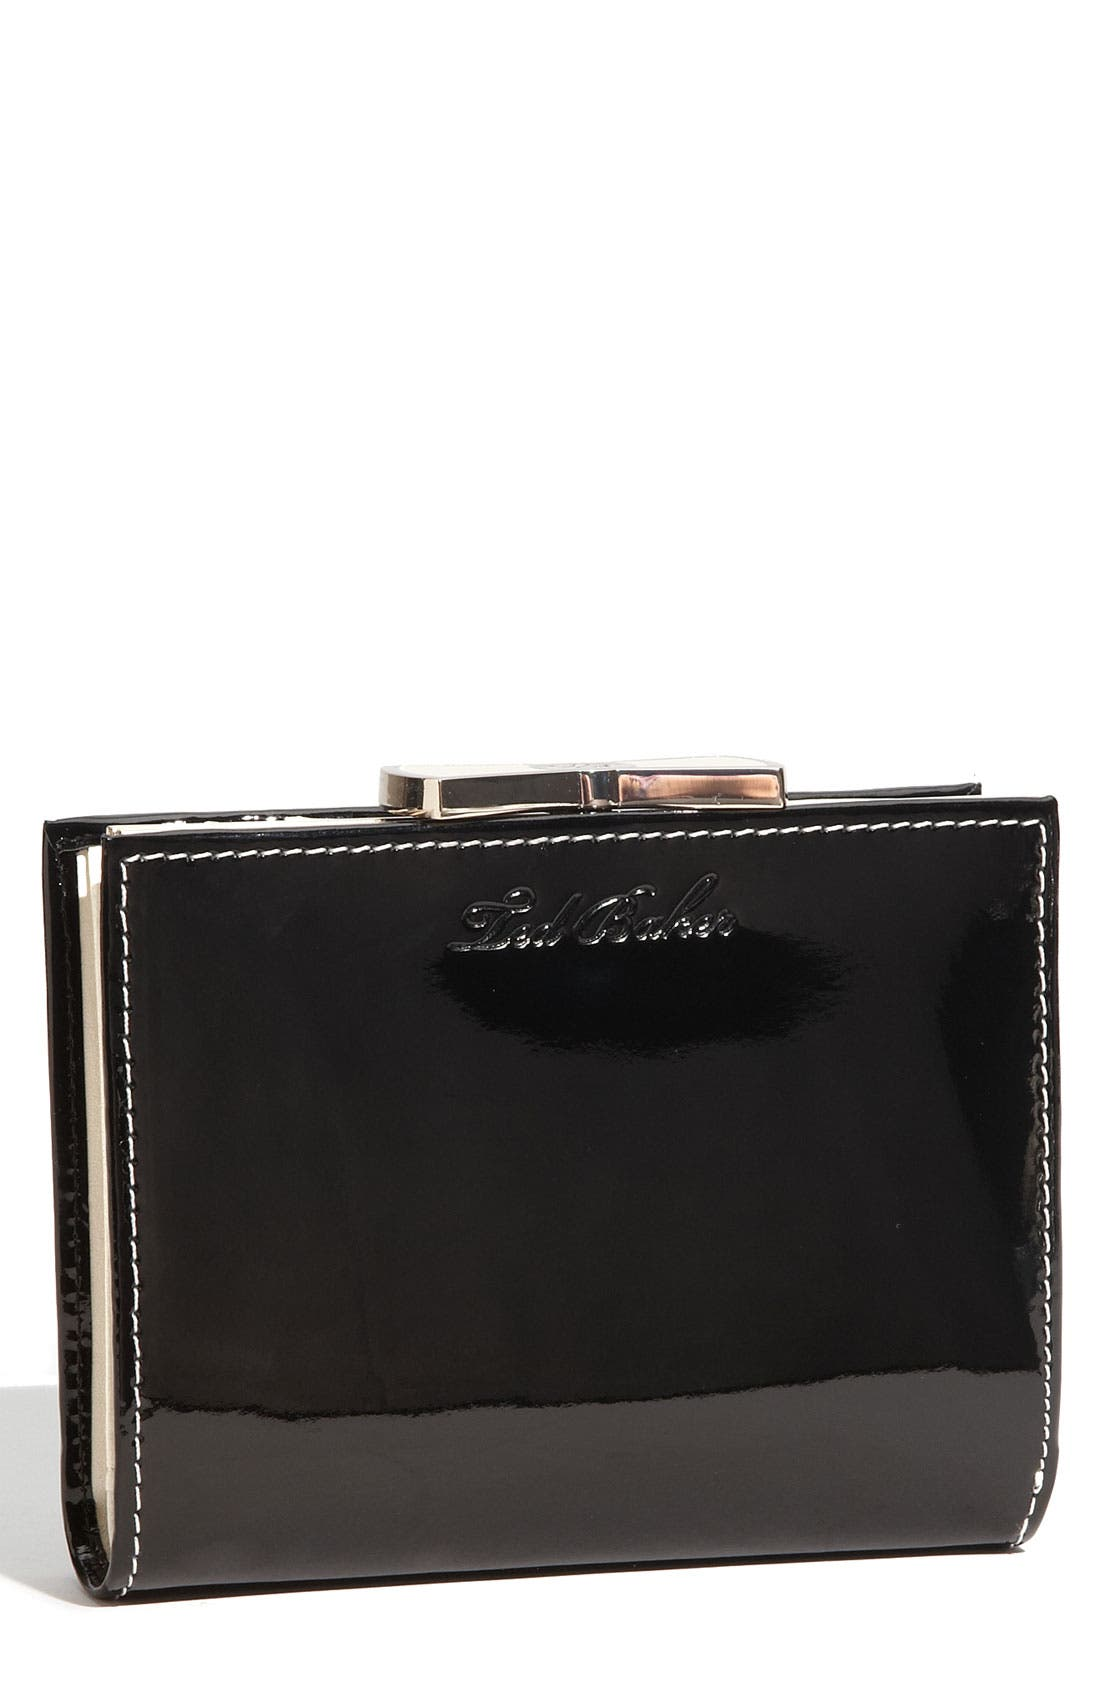 'Bow Clasp' French Wallet,                         Main,                         color, Black Patent